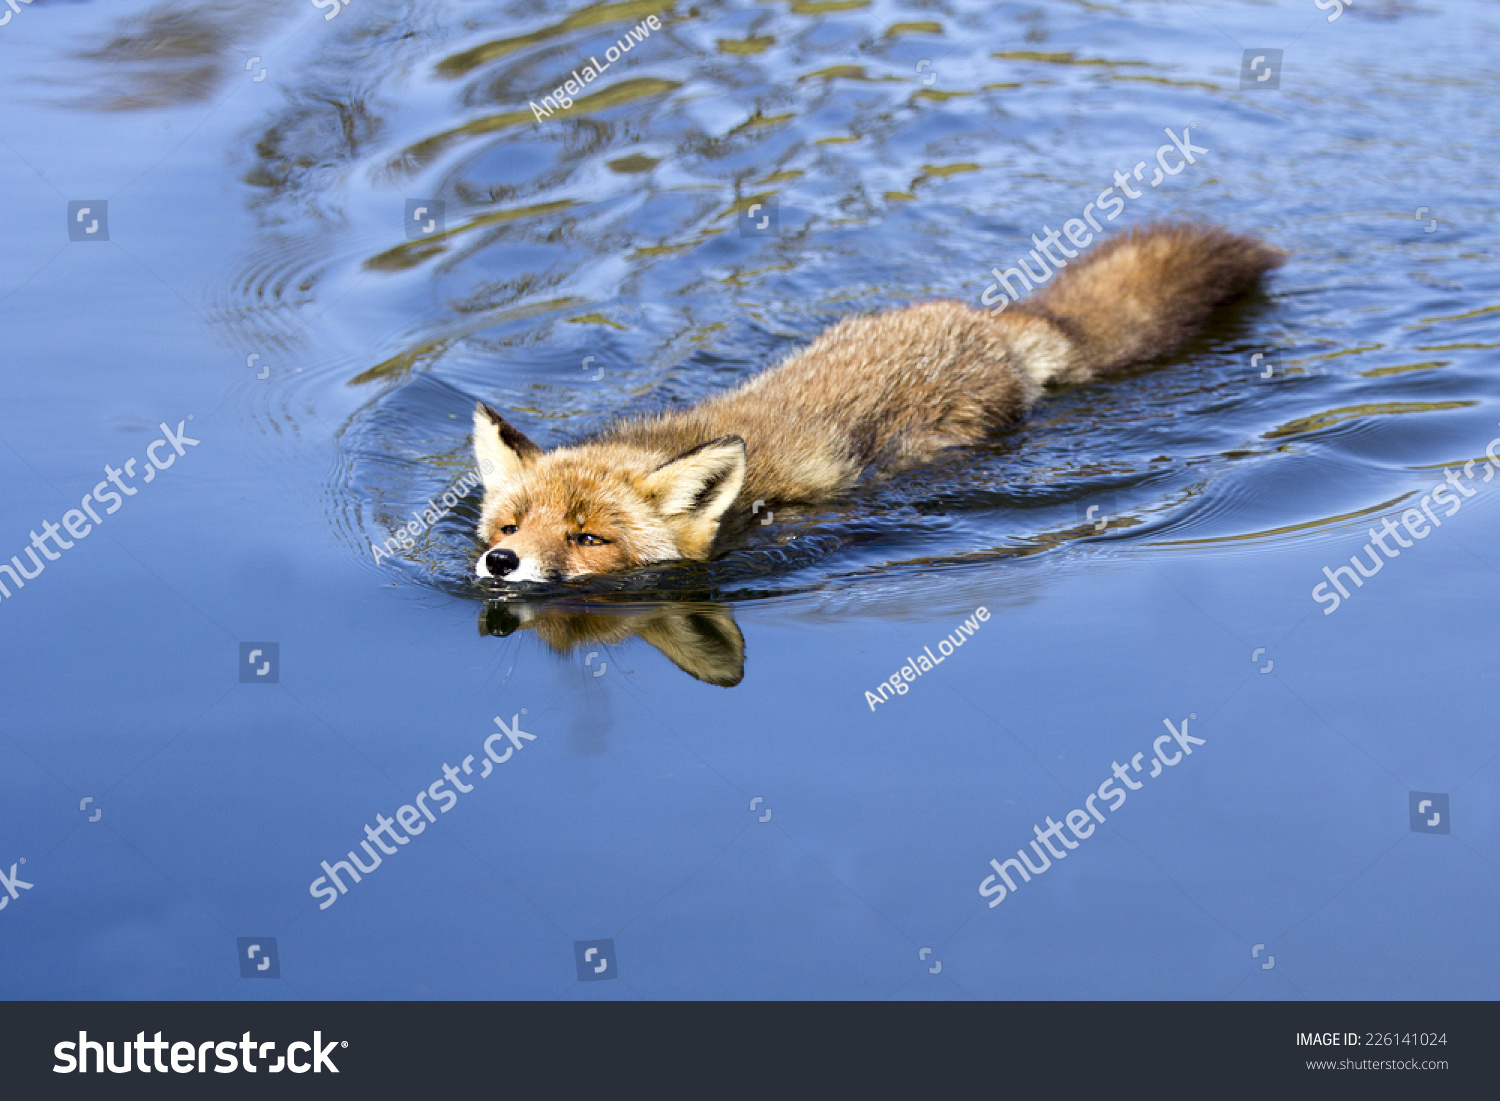 Image result for fox swimming in water